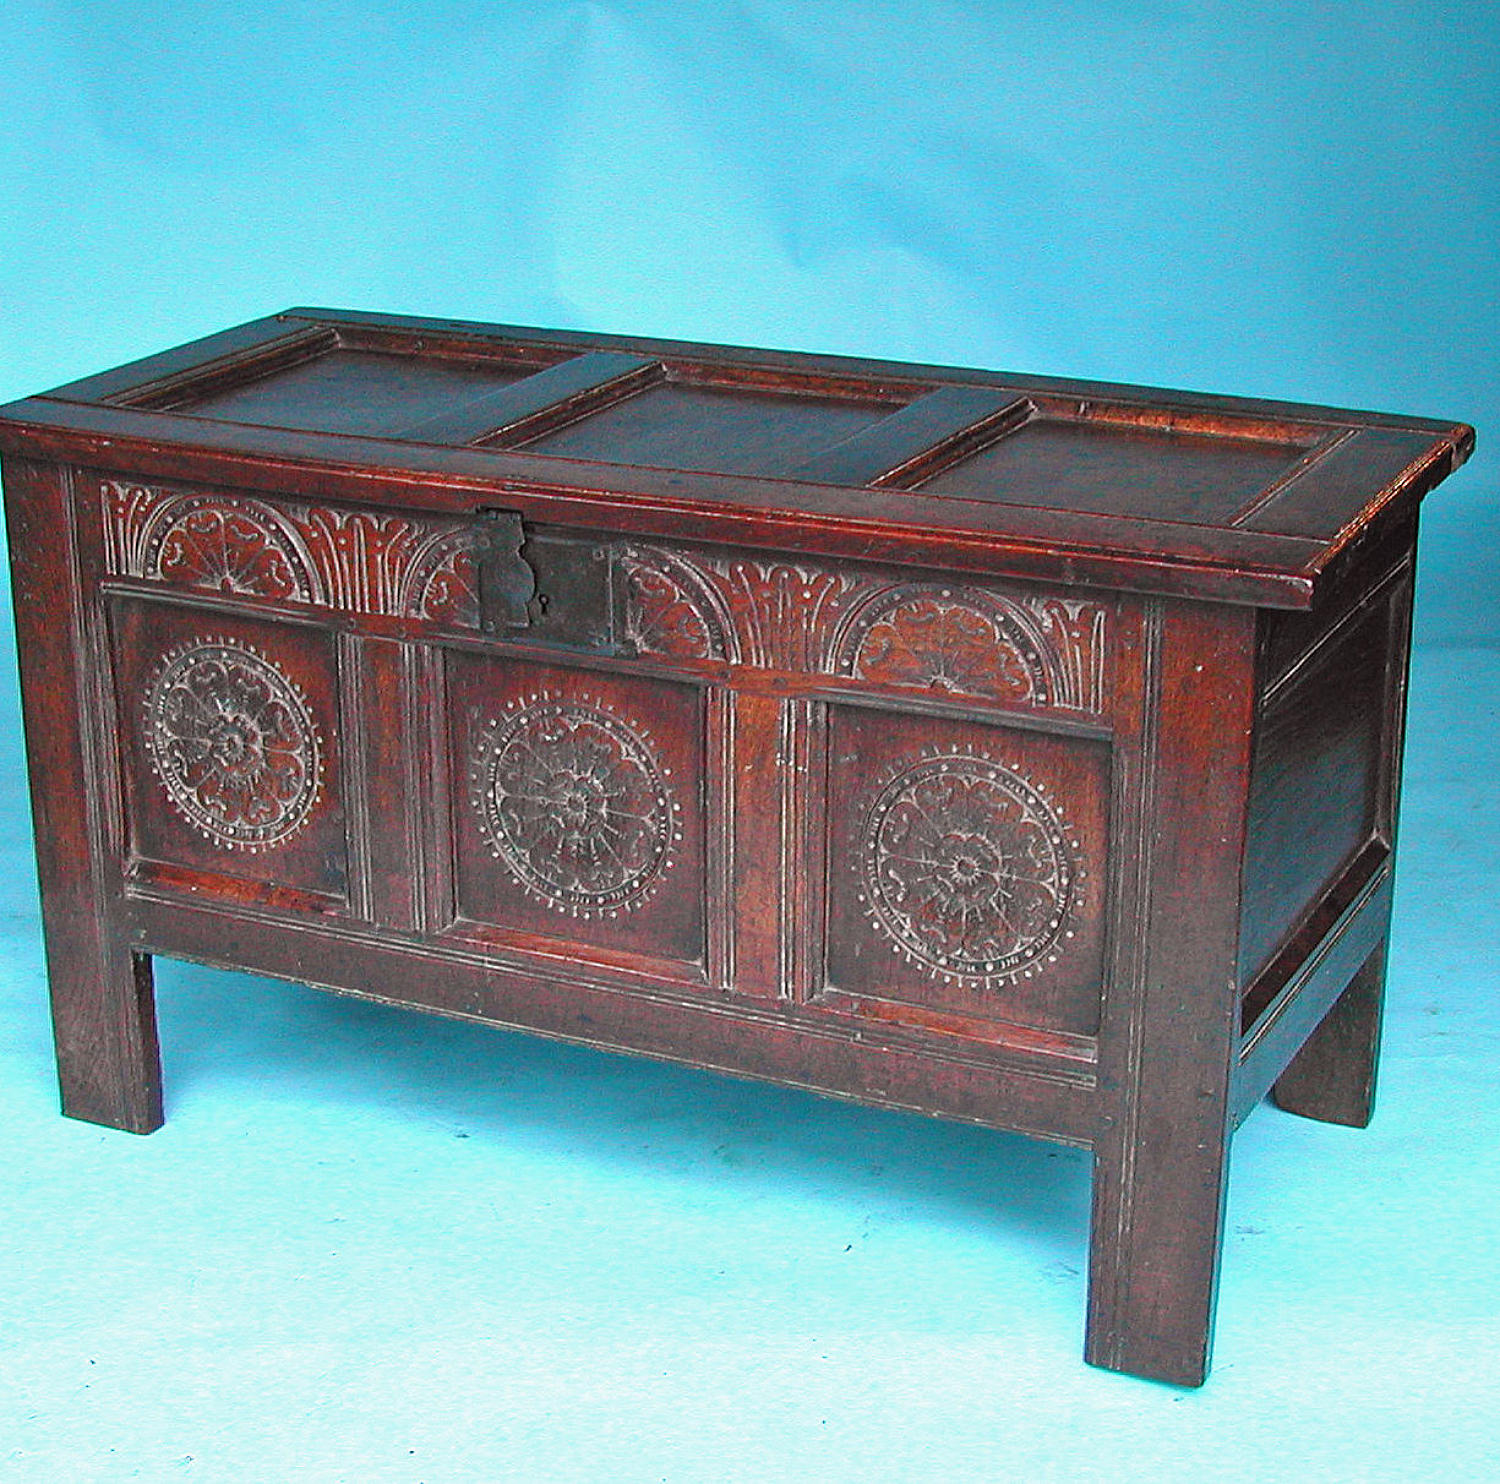 17thc Period Oak Joyned Coffer with Floral Carving.English. C1620-40